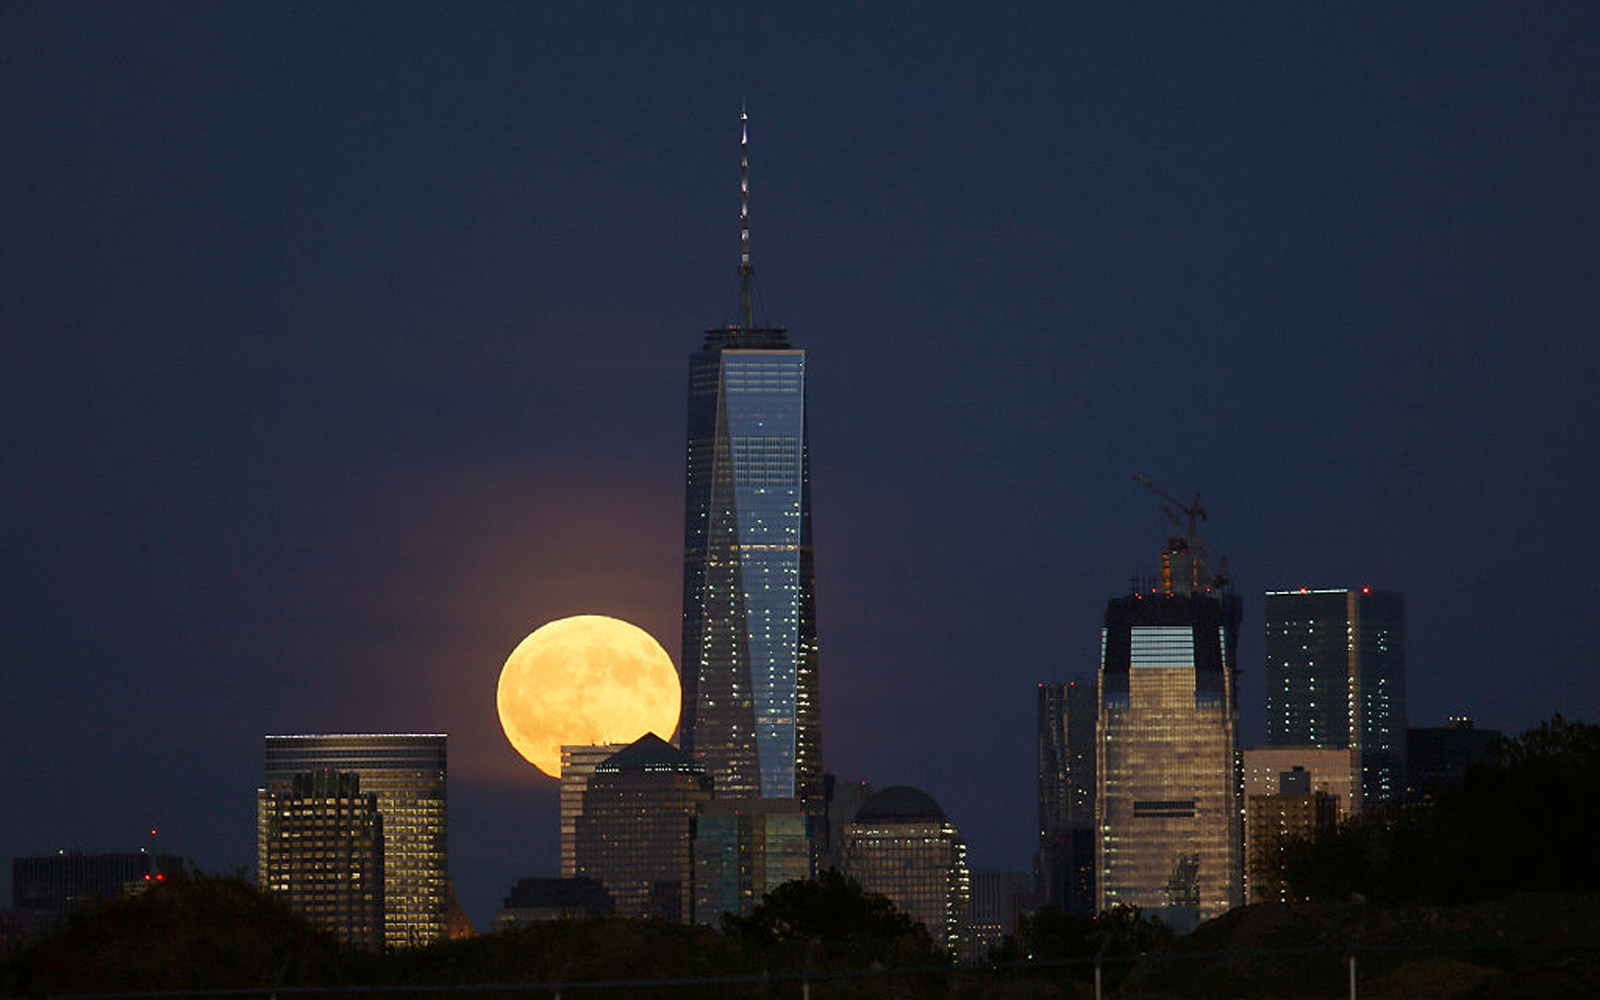 A full harvest moon rises behind Lower Manhattan and One World Trade Center in New York City